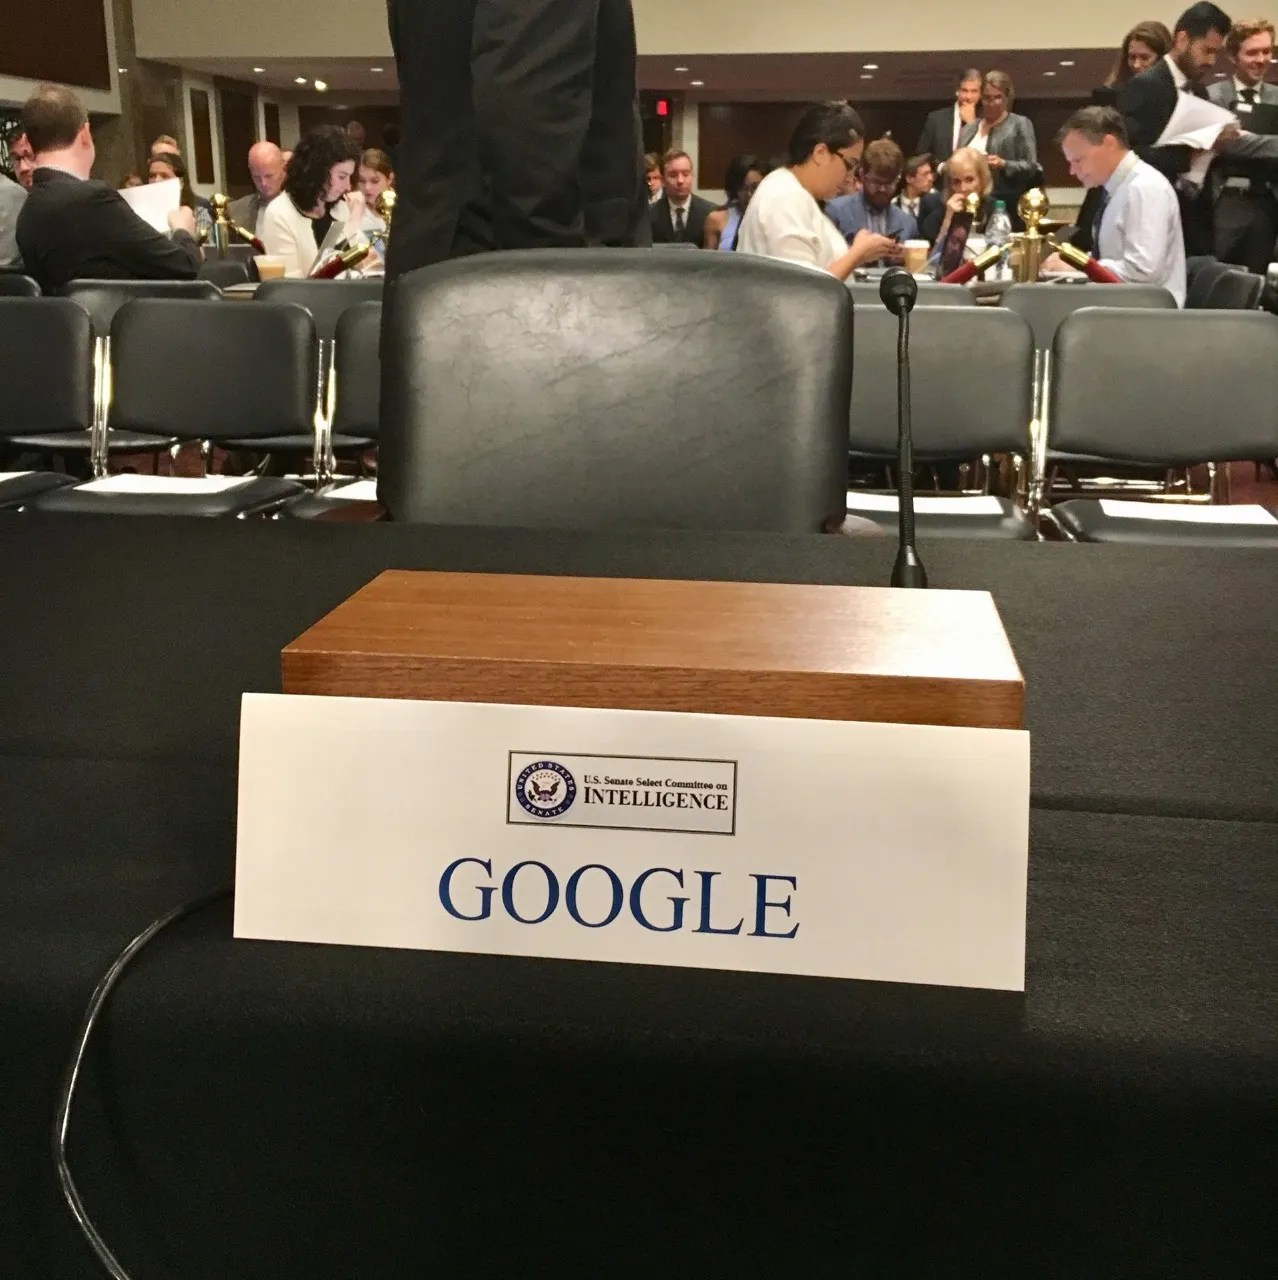 Google Chair Google Gets Empty Chair Treatment At Senate Intel Hearing